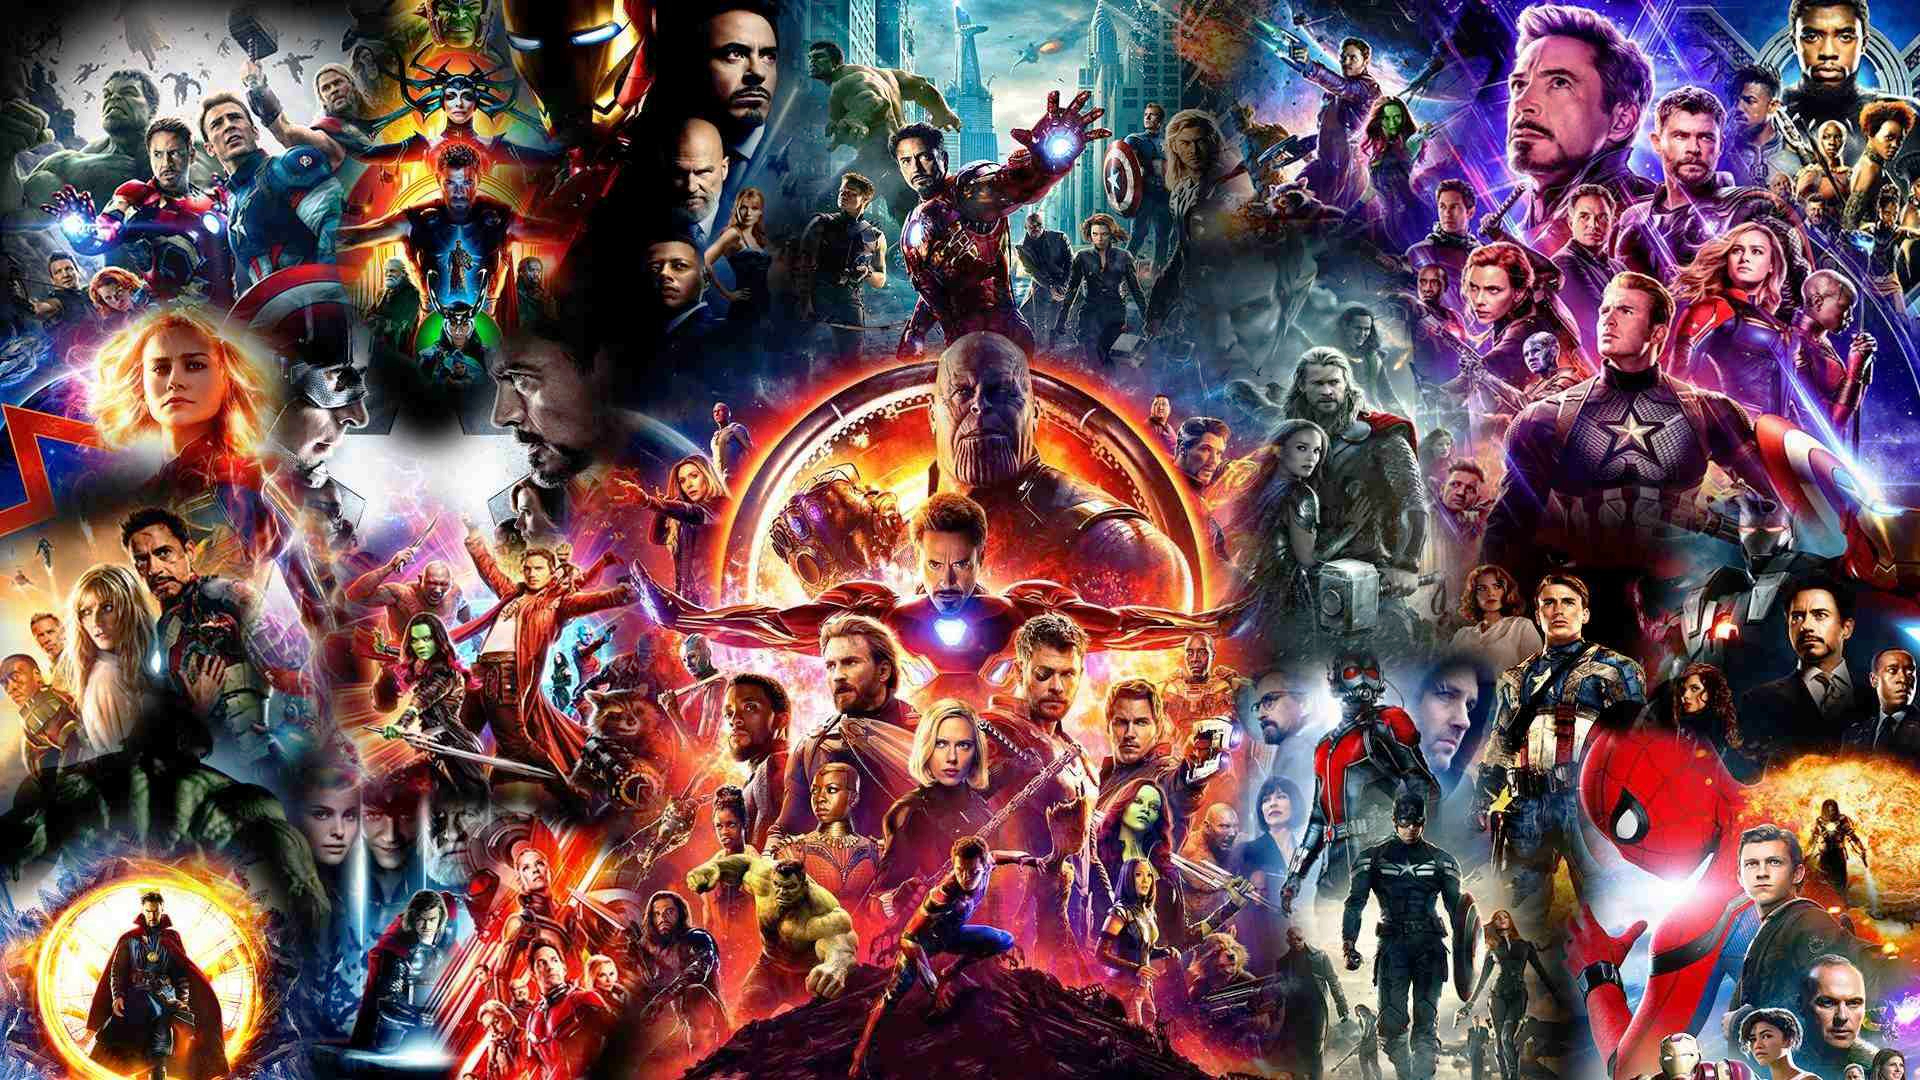 The Cinematic Universe of Marvel